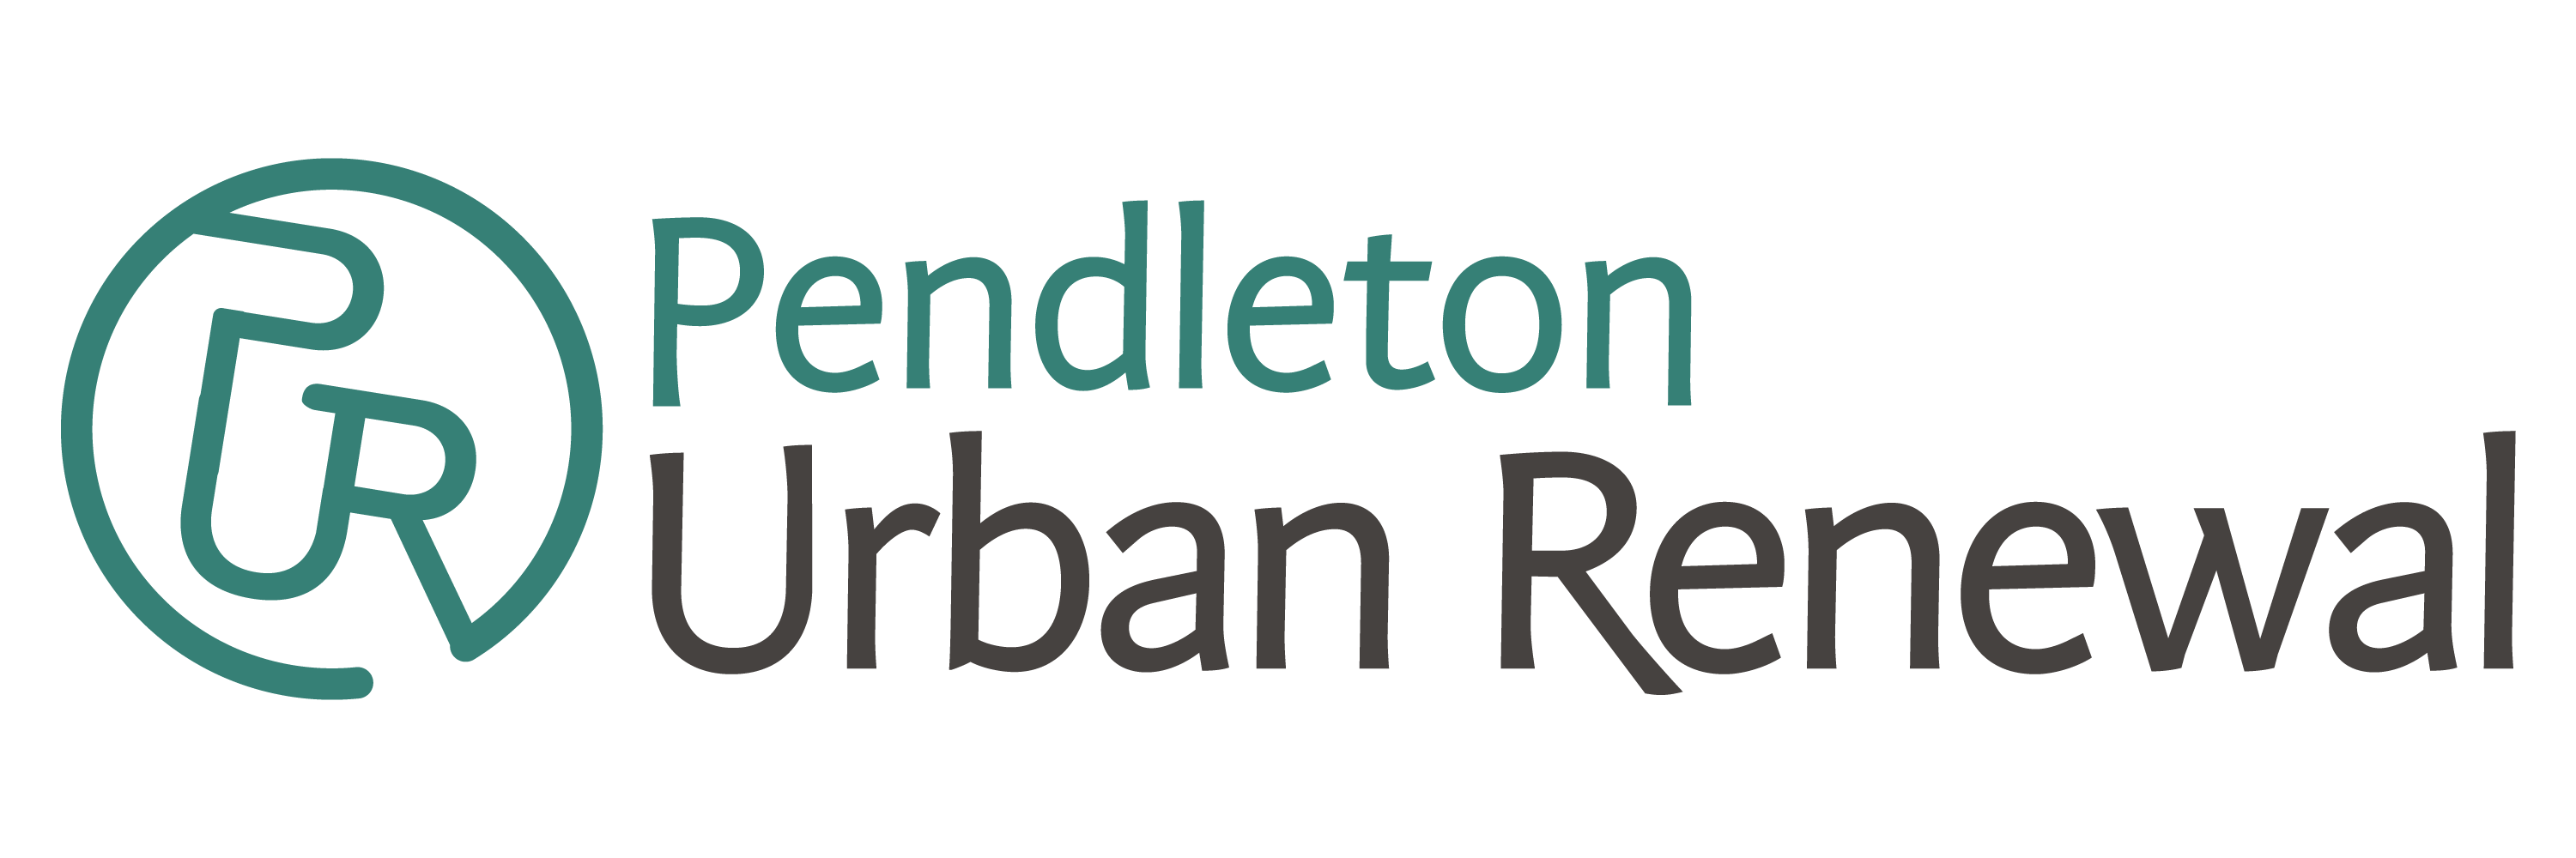 City of Pendleton